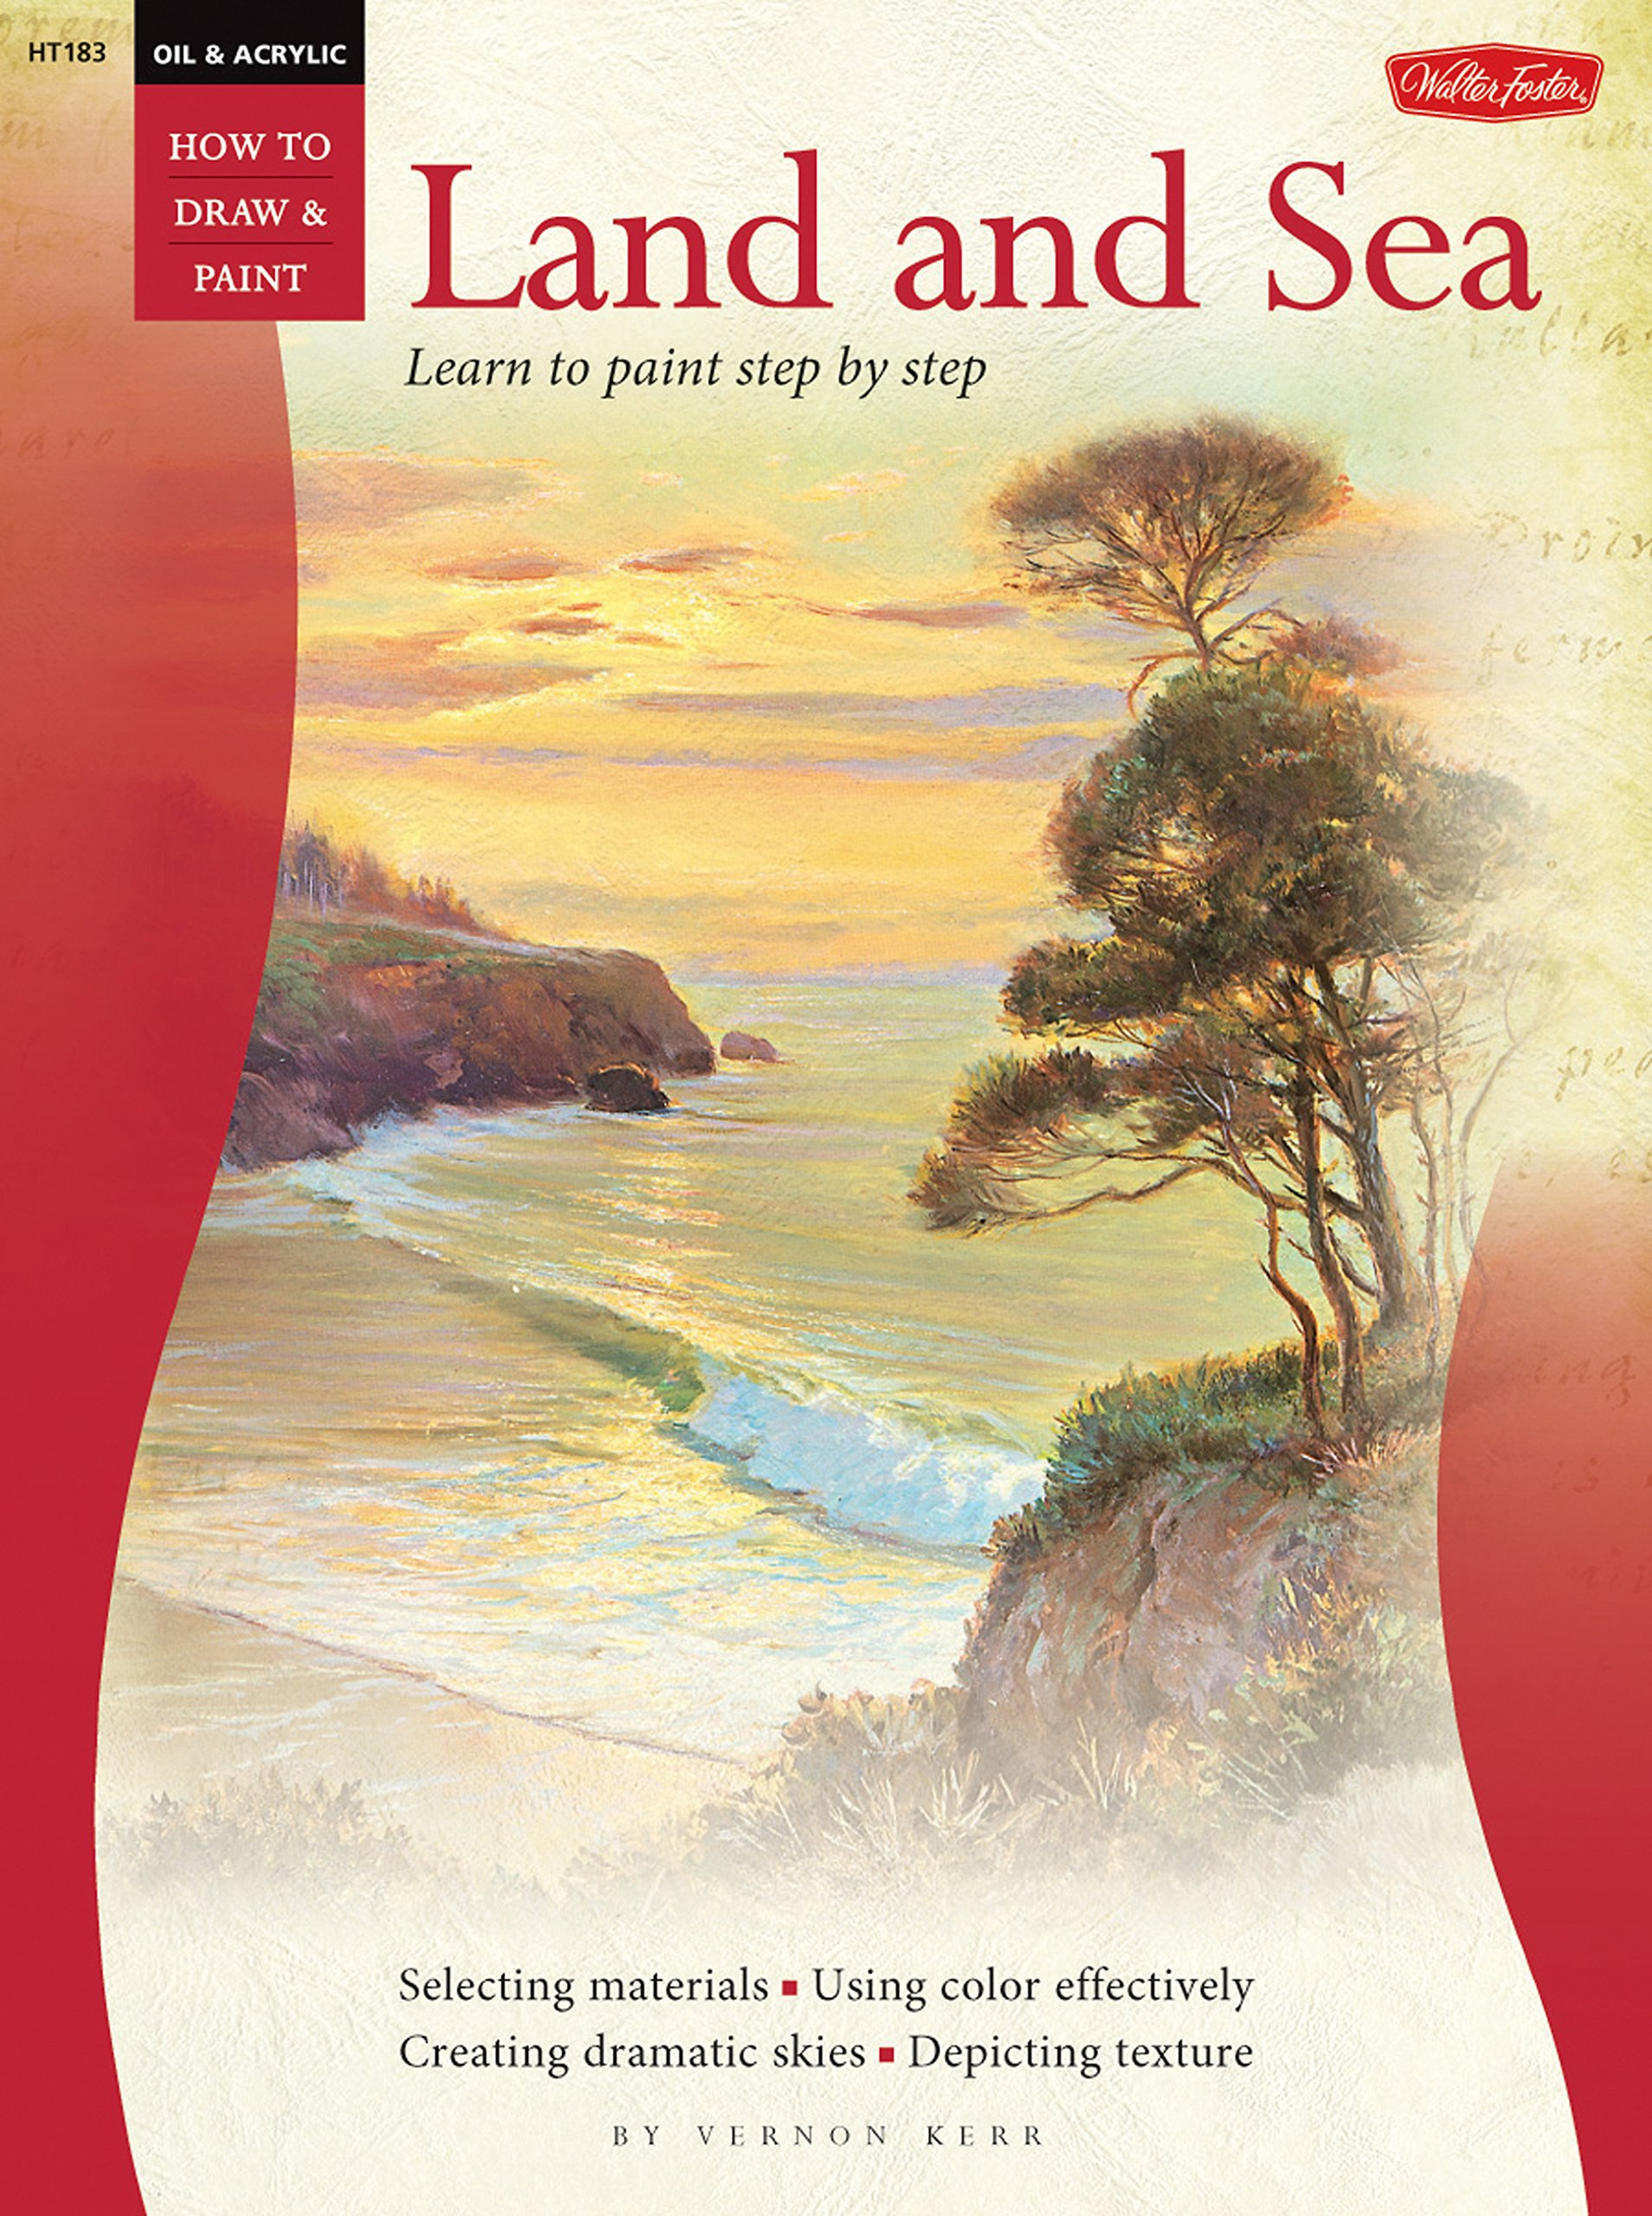 Read Online Oil: Land and Sea (HT183) pdf